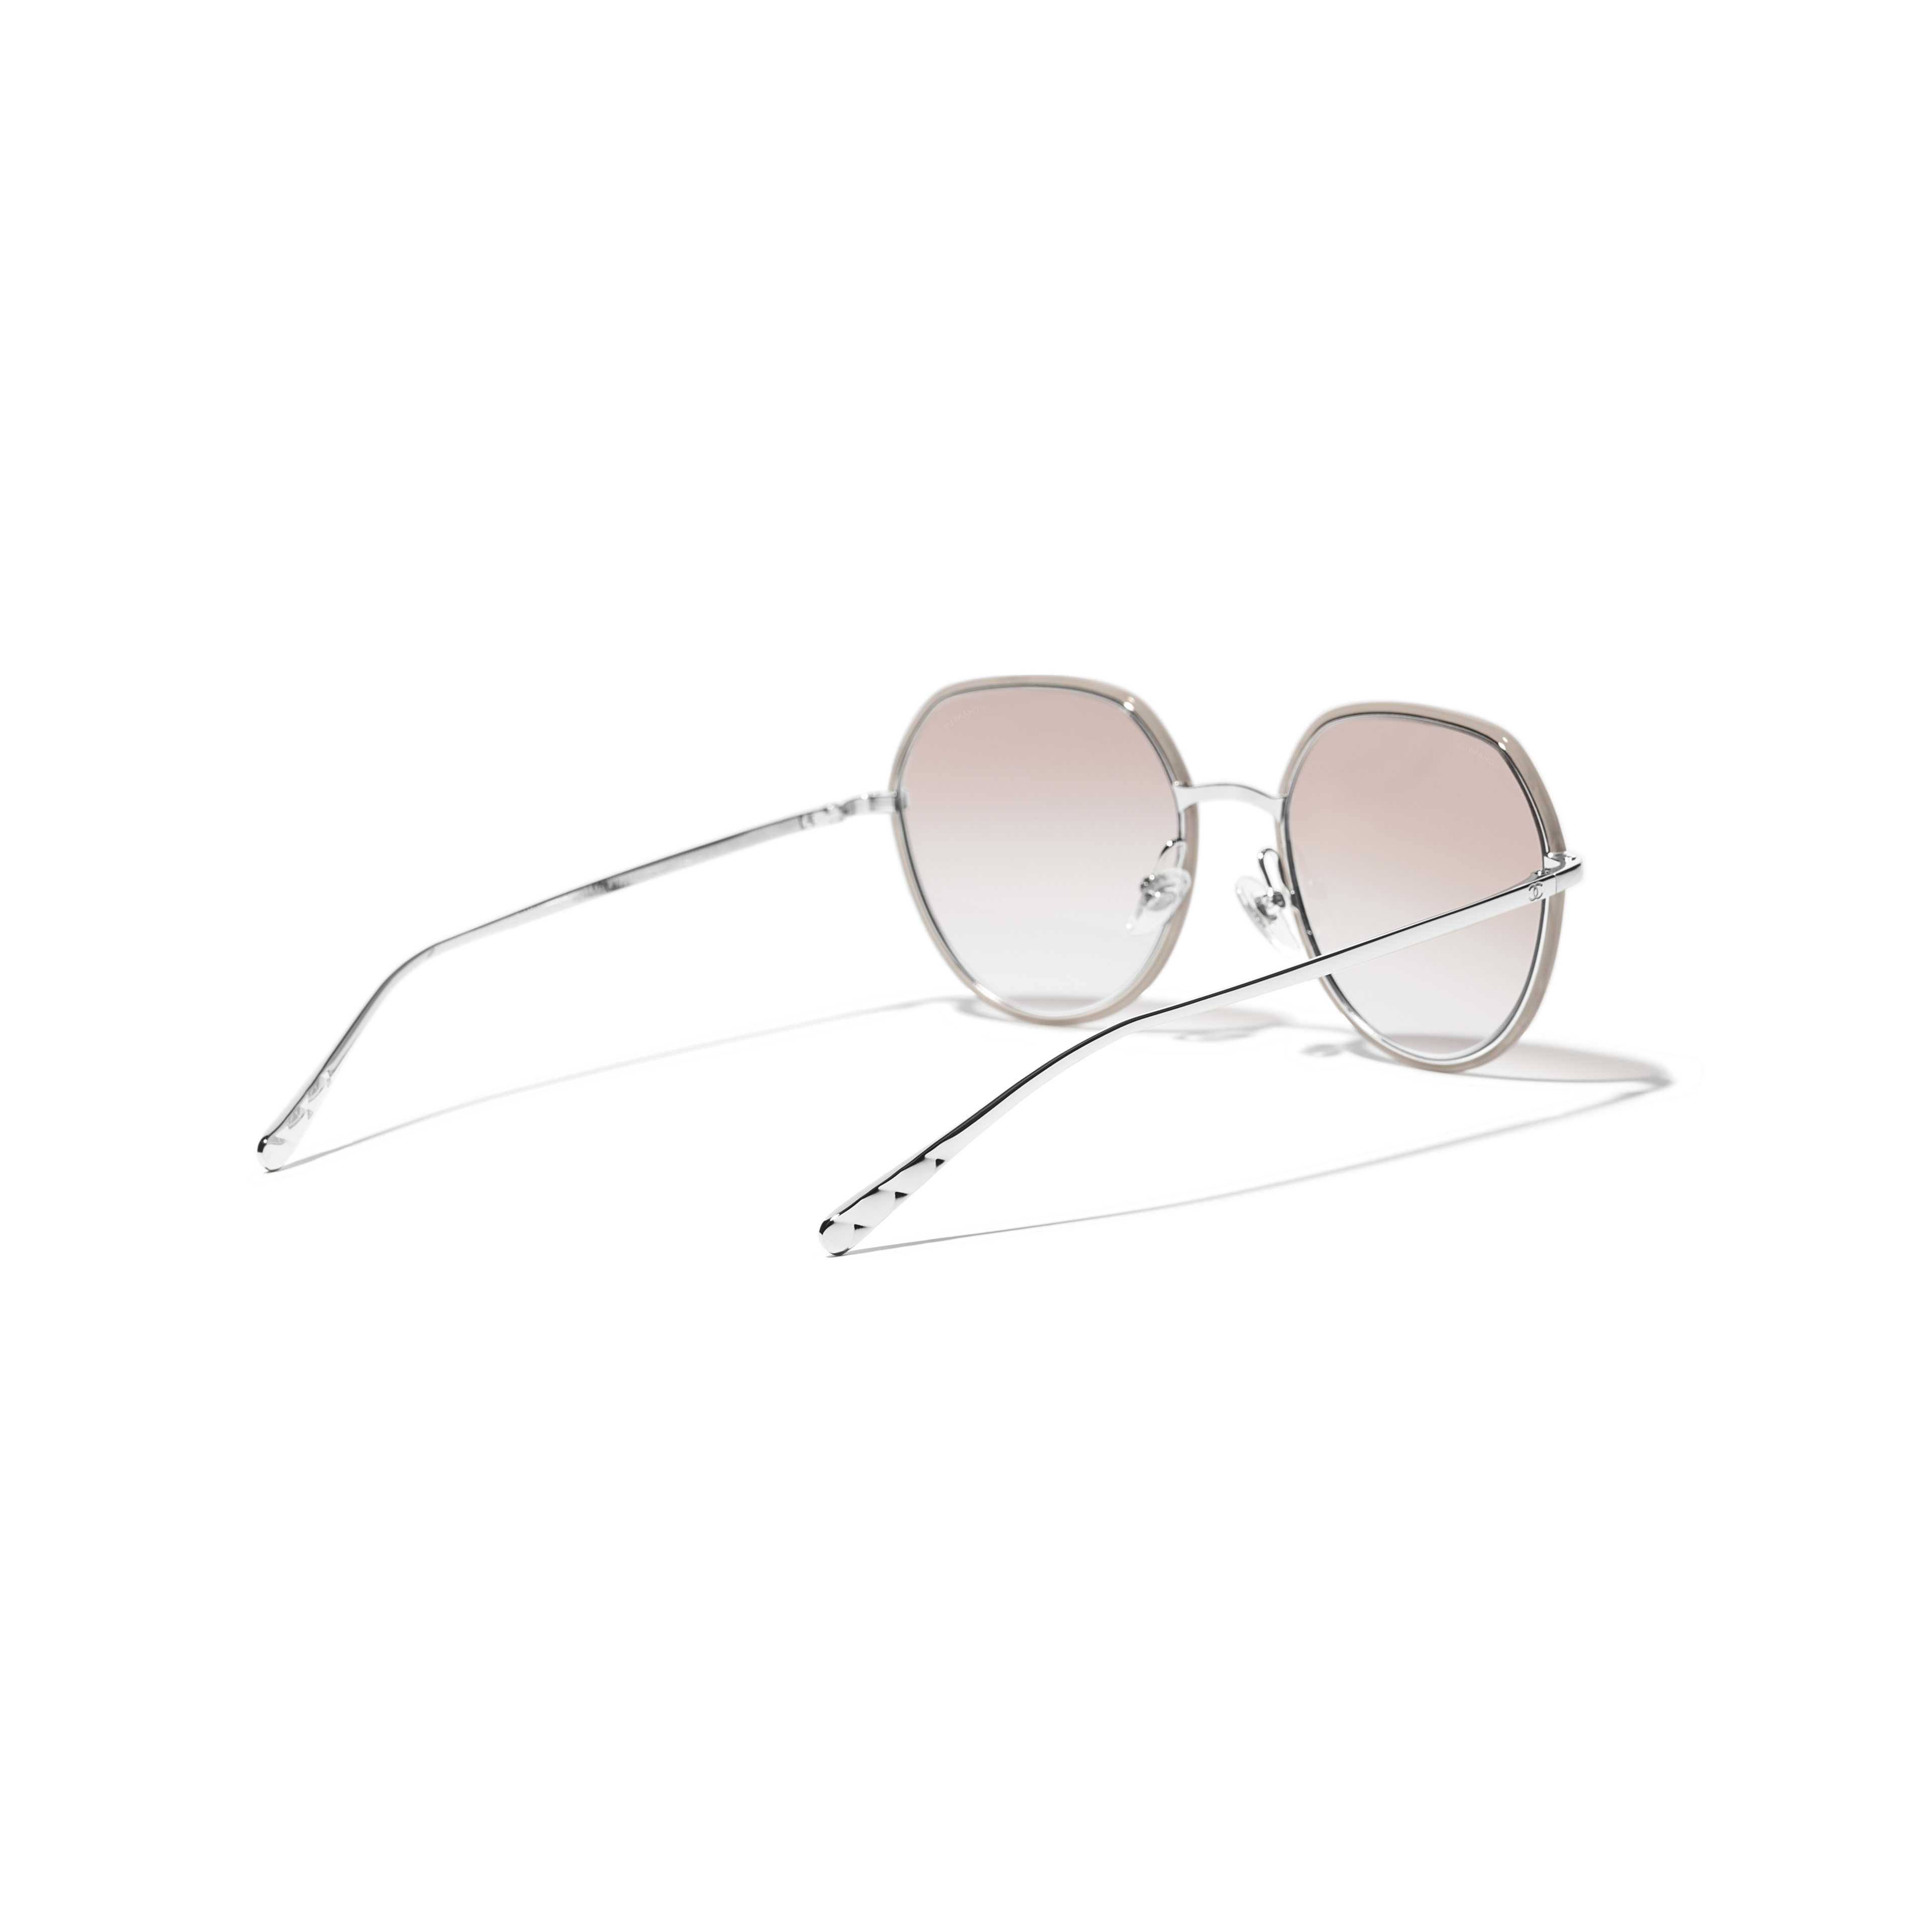 Round Sunglasses - Silver & Beige - Metal - CHANEL - Extra view - see standard sized version